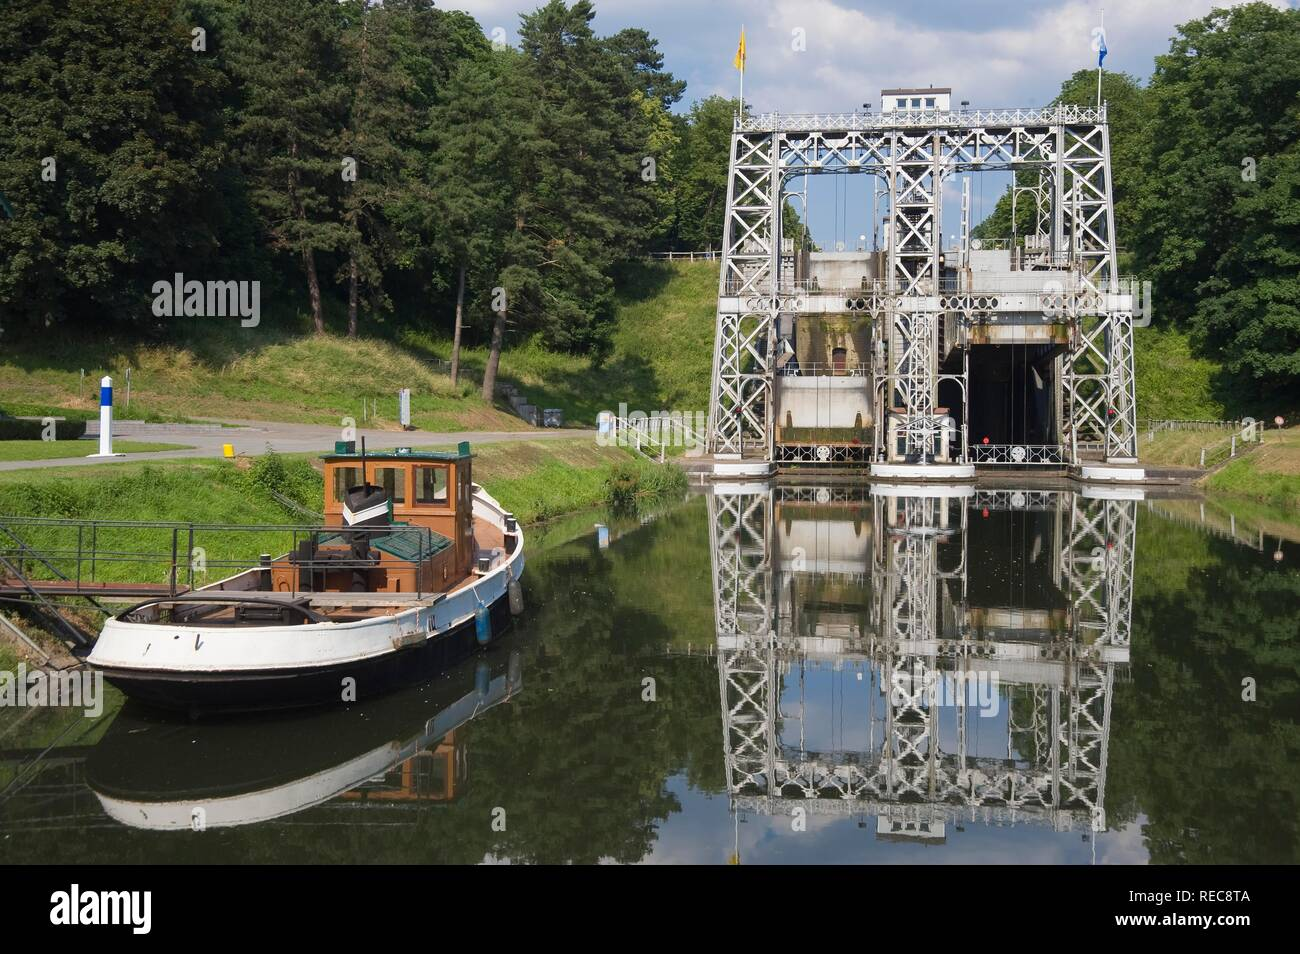 Canal du Centre, boat anchored in front of the Boat Lift number 3, Unesco World Heritage Site, Bracquegnies, Hainaut Province - Stock Image